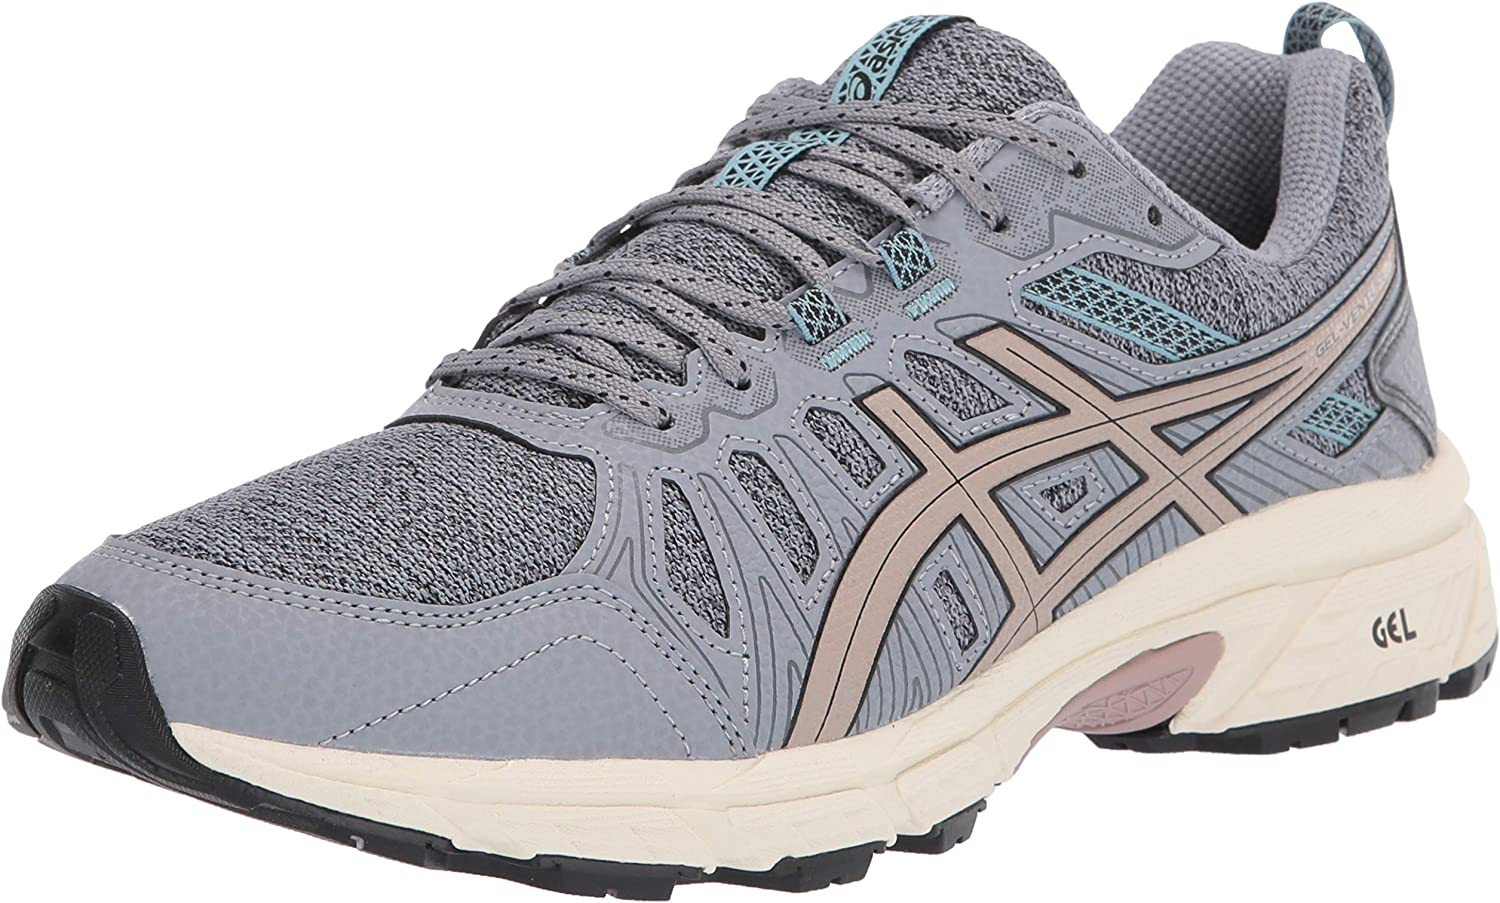 ASICS Womens Gel-Venture 7 MX Trail Running Shoes, 5M, Sheet Rock/Fawn: Amazon.es: Zapatos y complementos